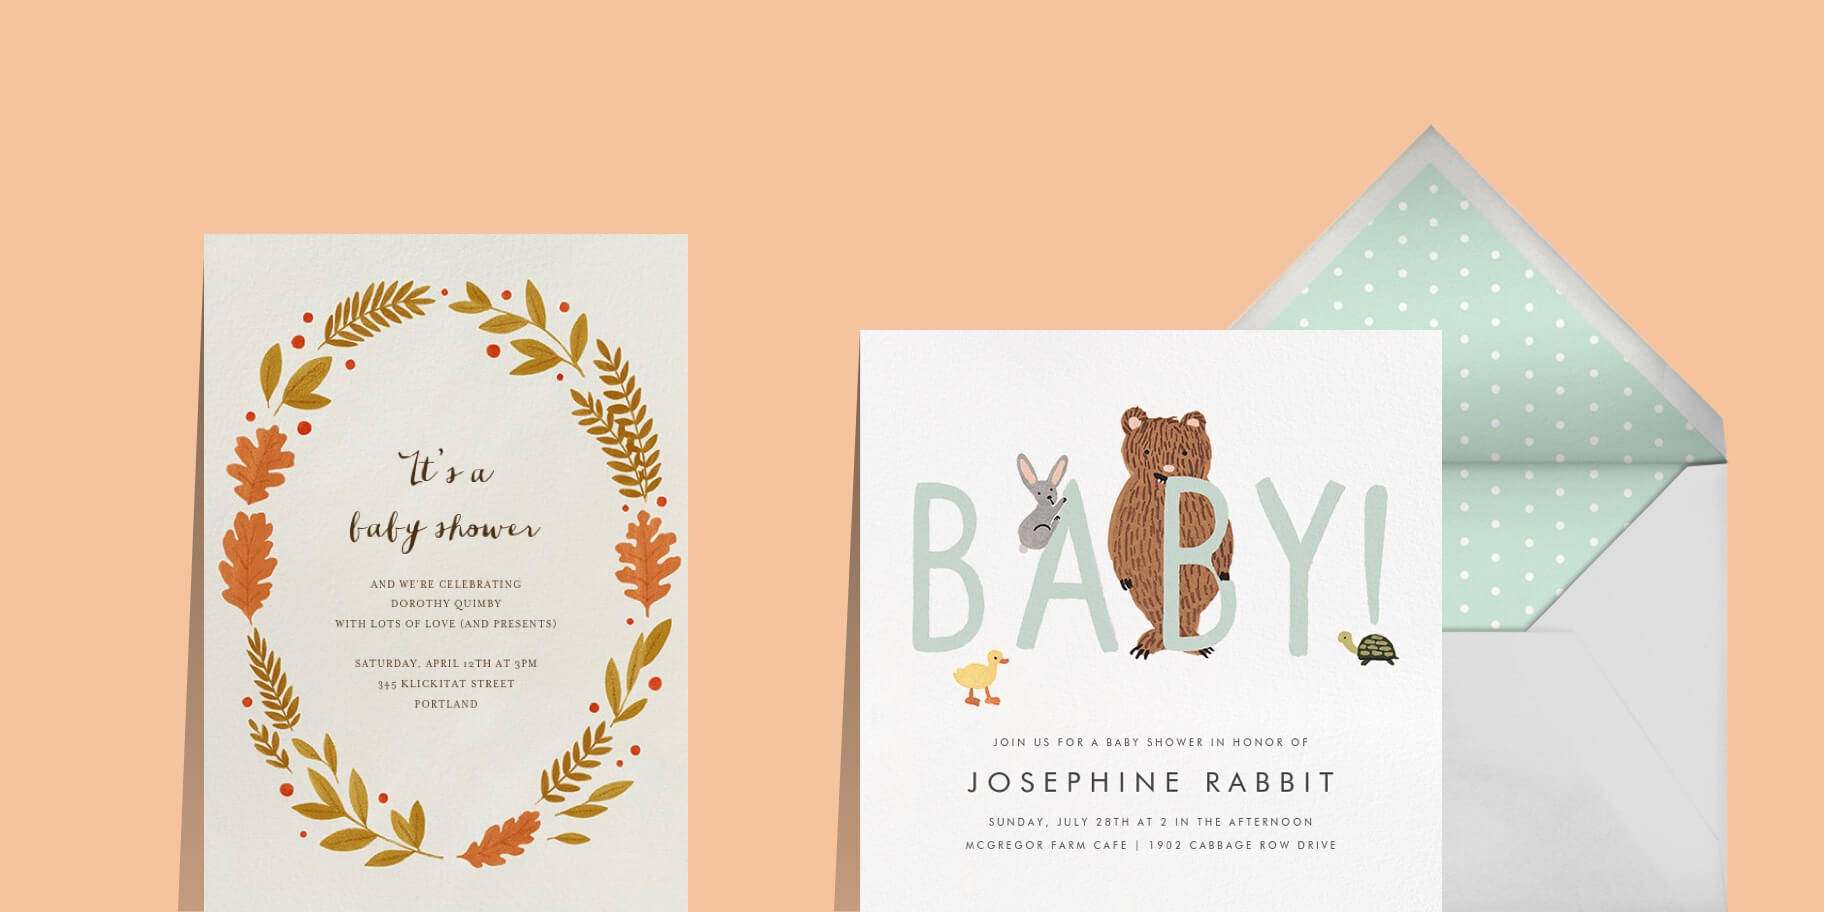 online invitations and cards - custom paper designs